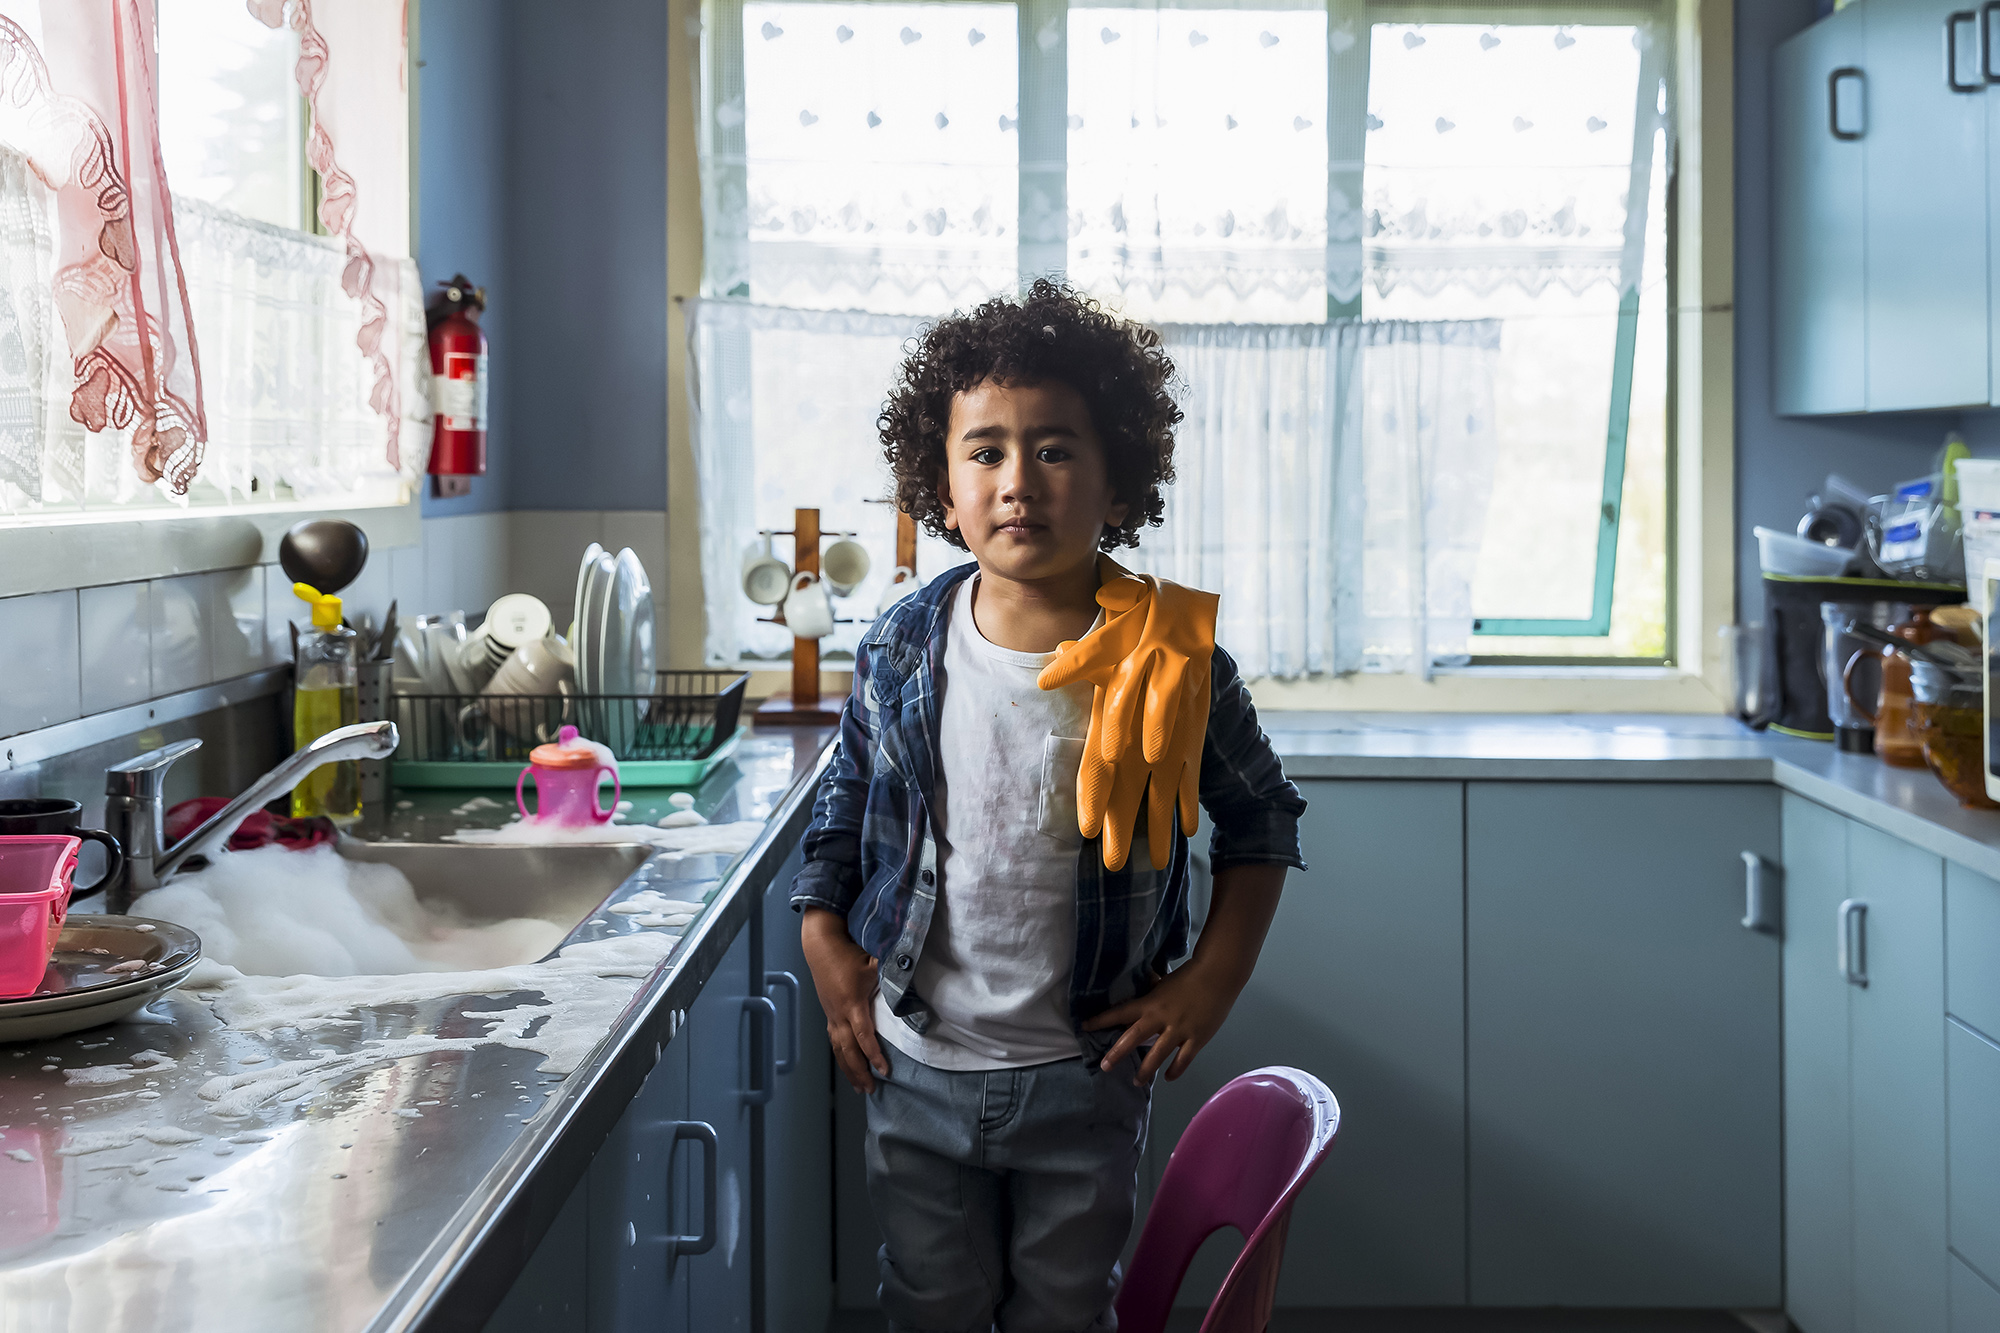 Vicki Leopold Photographer and Director, New Zealand kids in kitchen, Spark Advertising Campaign